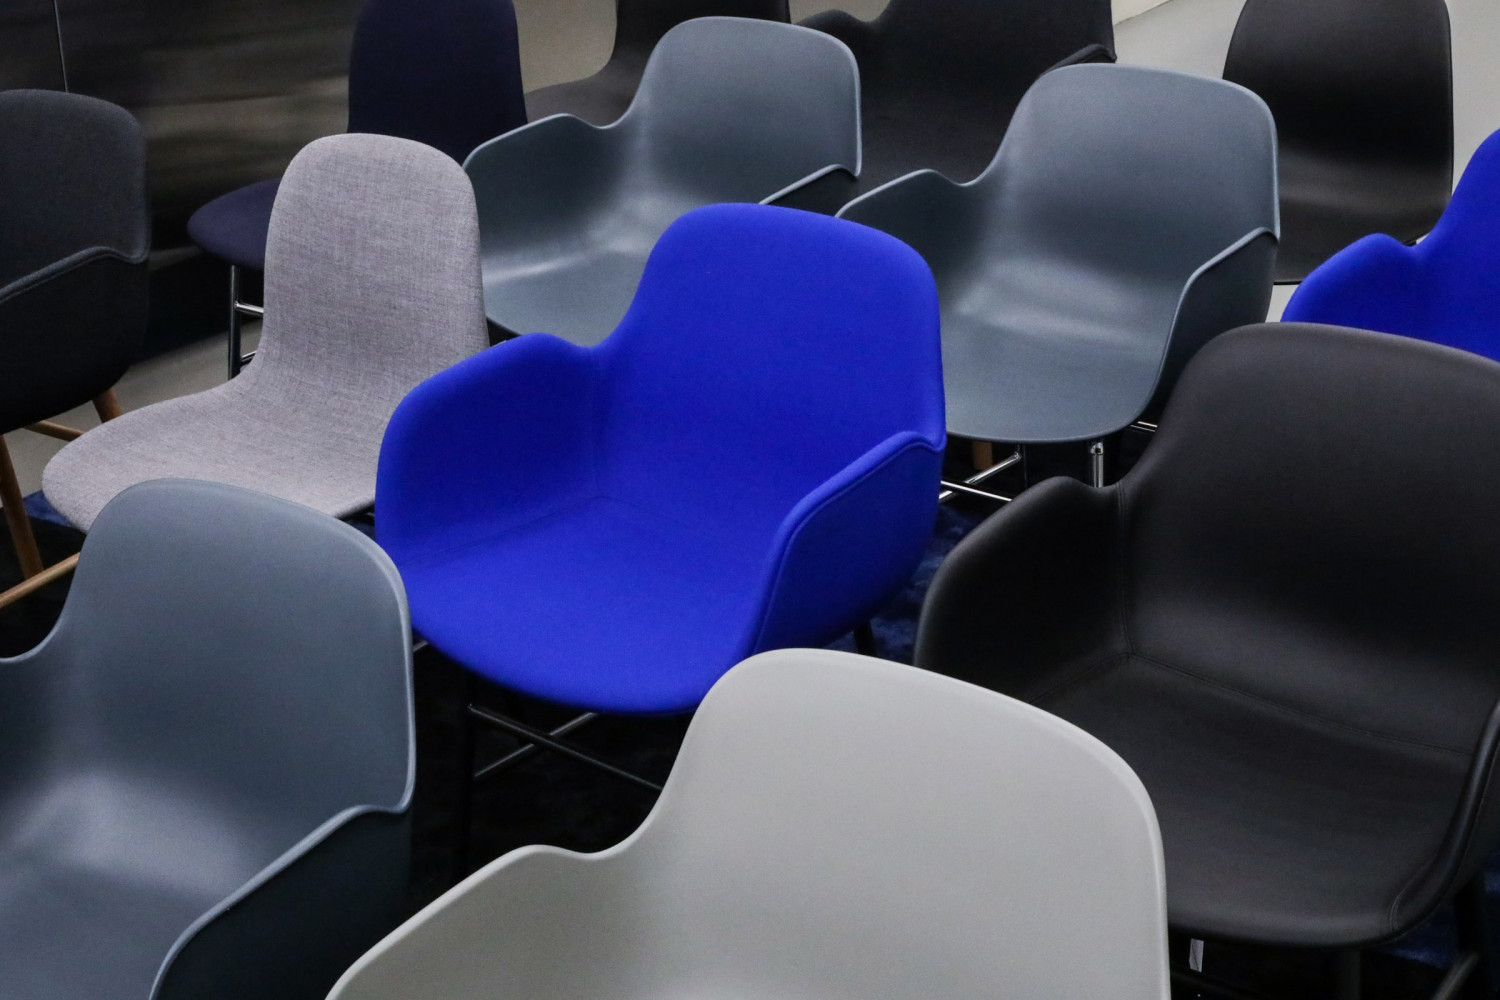 Image of a group of chairs